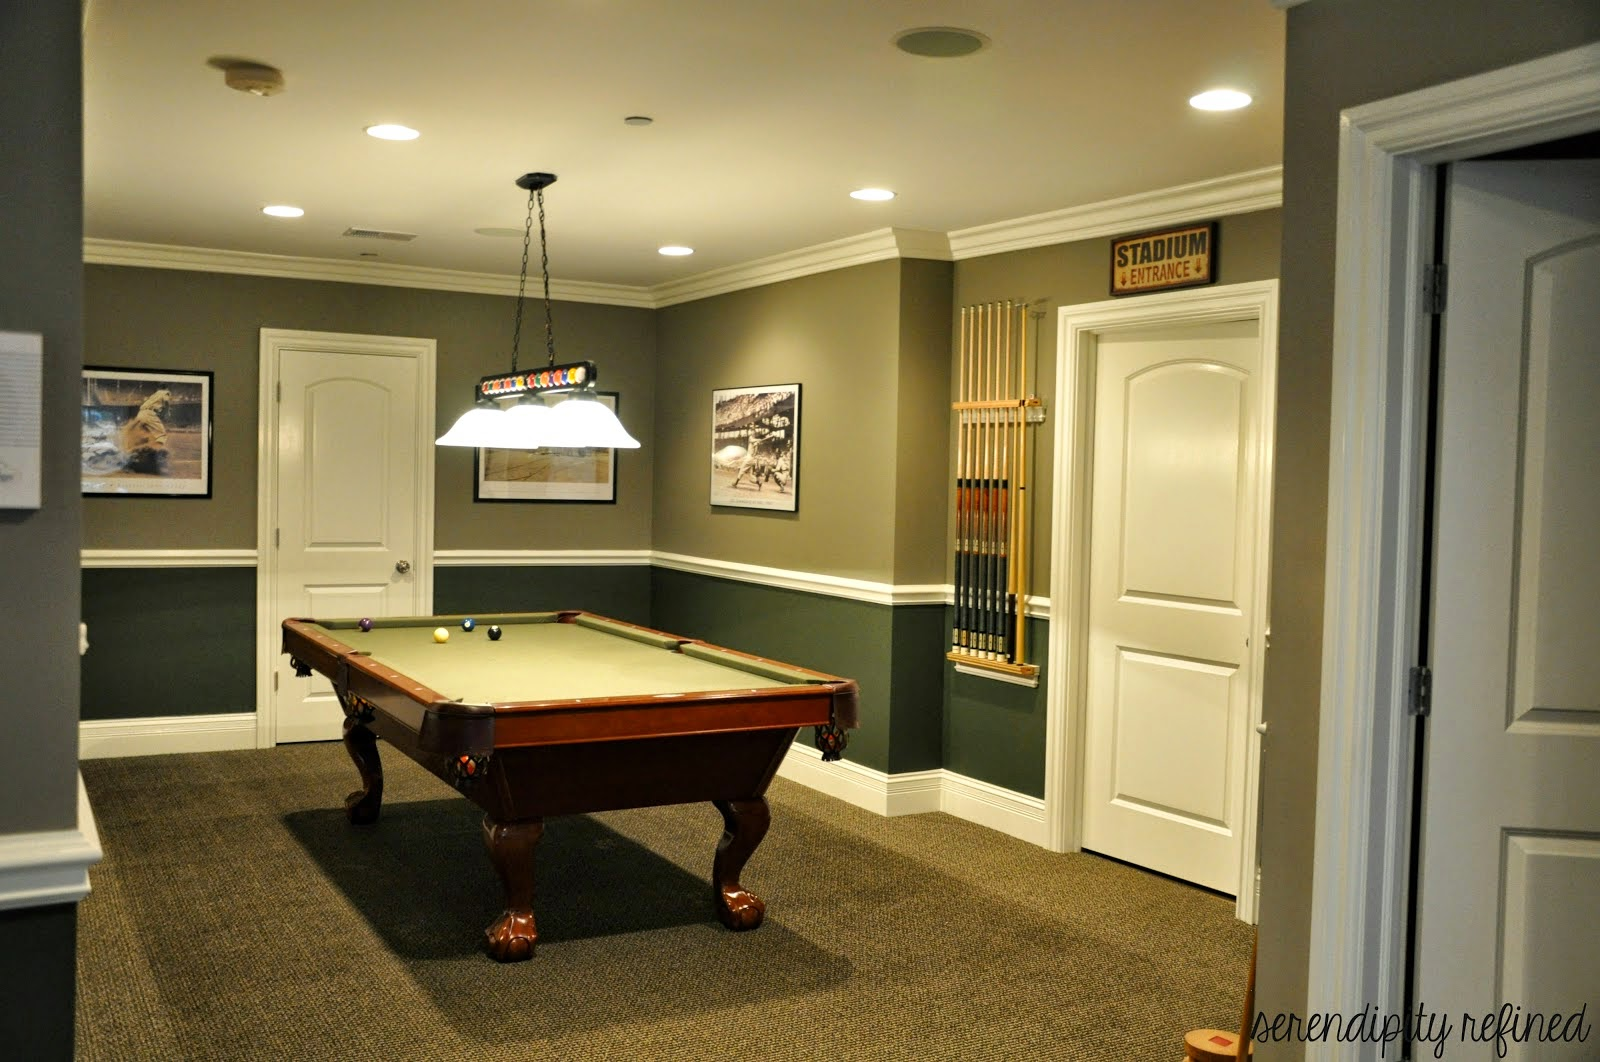 1000 images about billiard s rooms on pinterest billiard room - Game Room Decorating Cool Shelving Ideas For Small Rooms Small